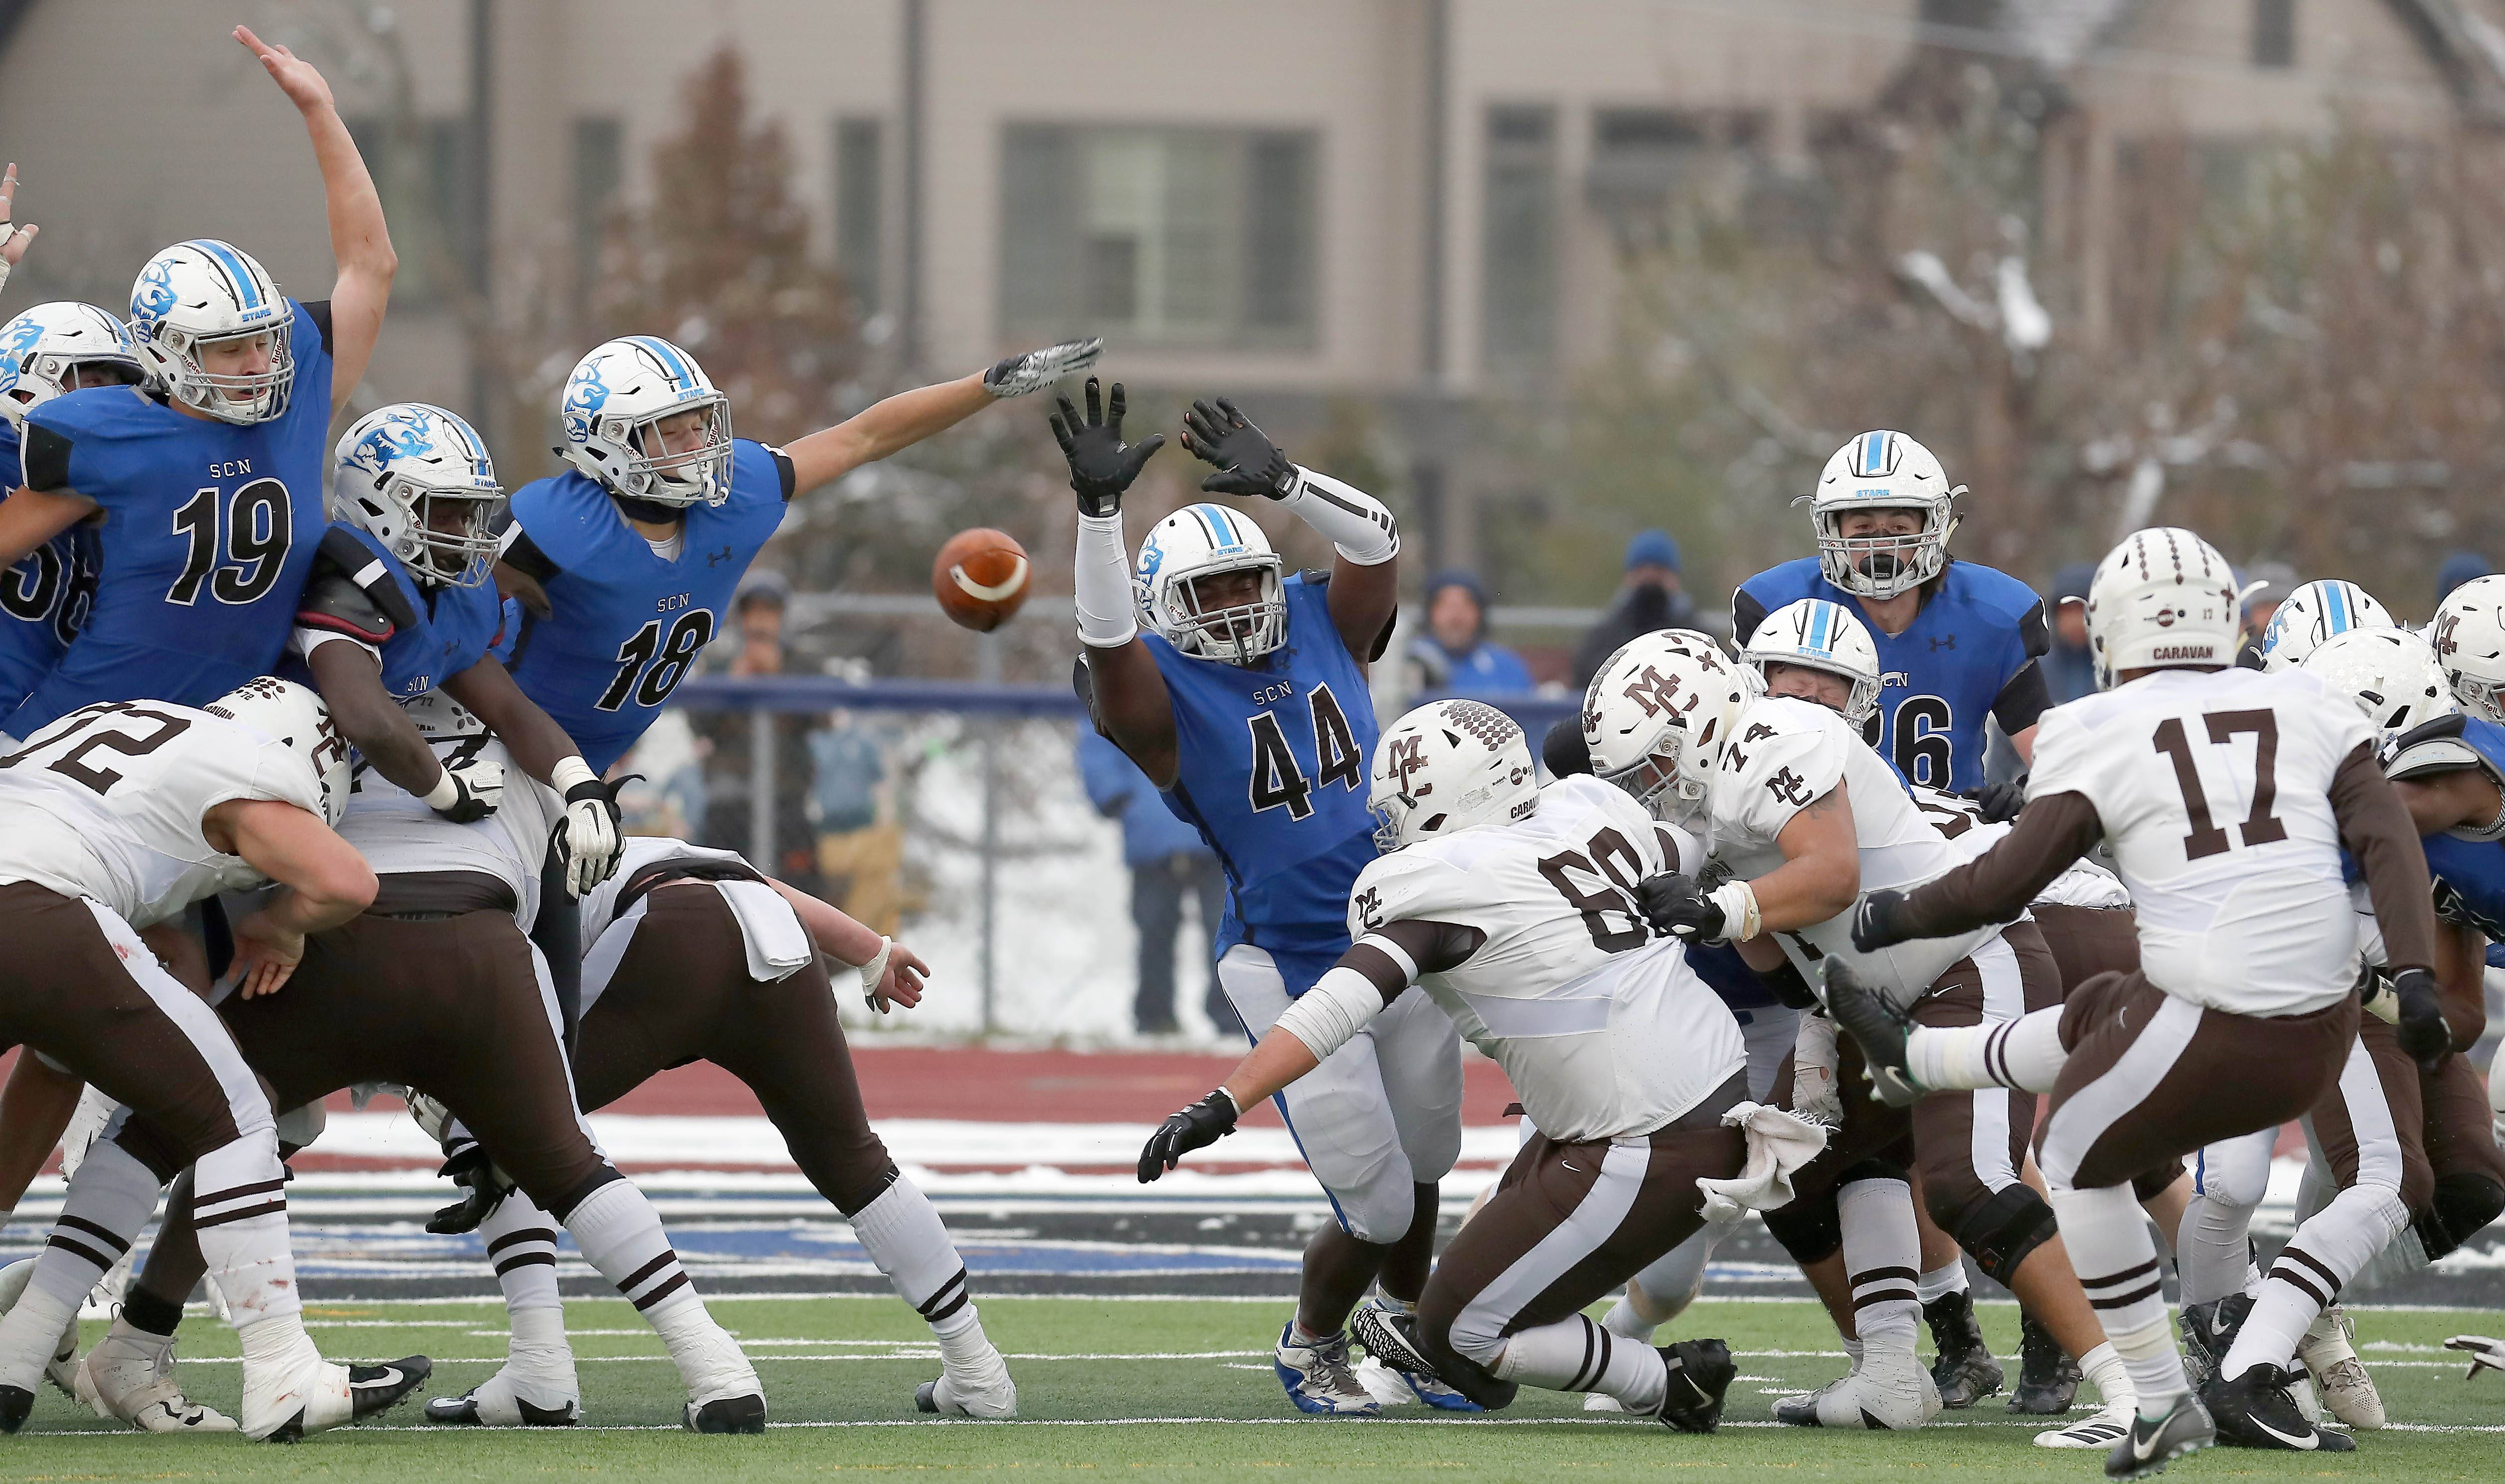 St. Charles North's DJ Oshin (44) comes up with a huge field goal block to force overtime Saturday during the IHSA Class 7A football semifinals in St. Charles.